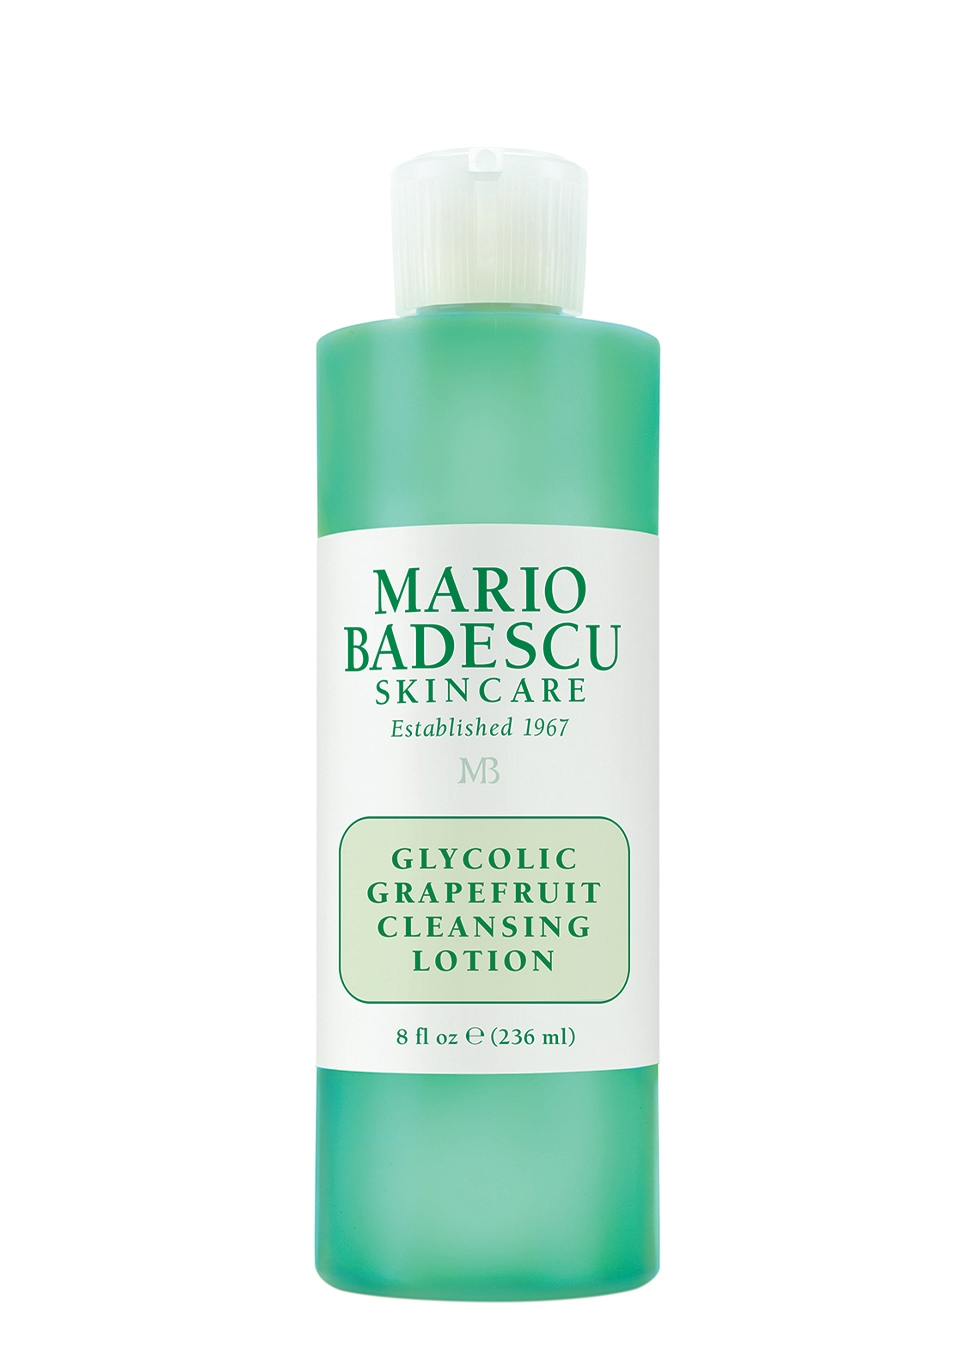 Glycolic Grapefruit Cleansing Lotion 236ml